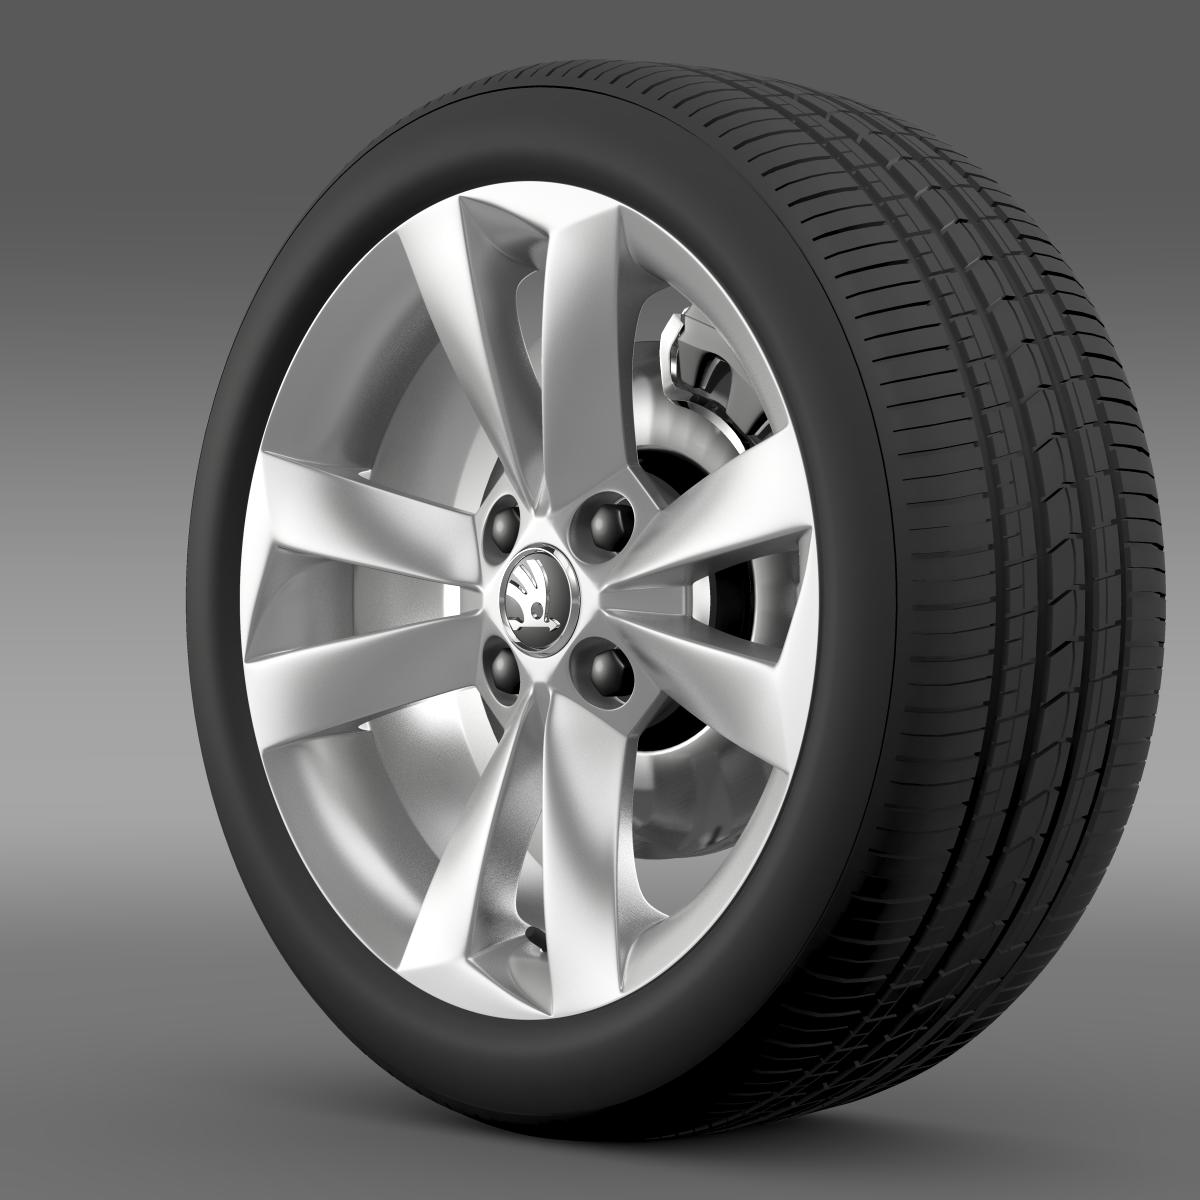 skoda citigo wheel 3d model 3ds max fbx c4d lwo ma mb hrc xsi obj 210870